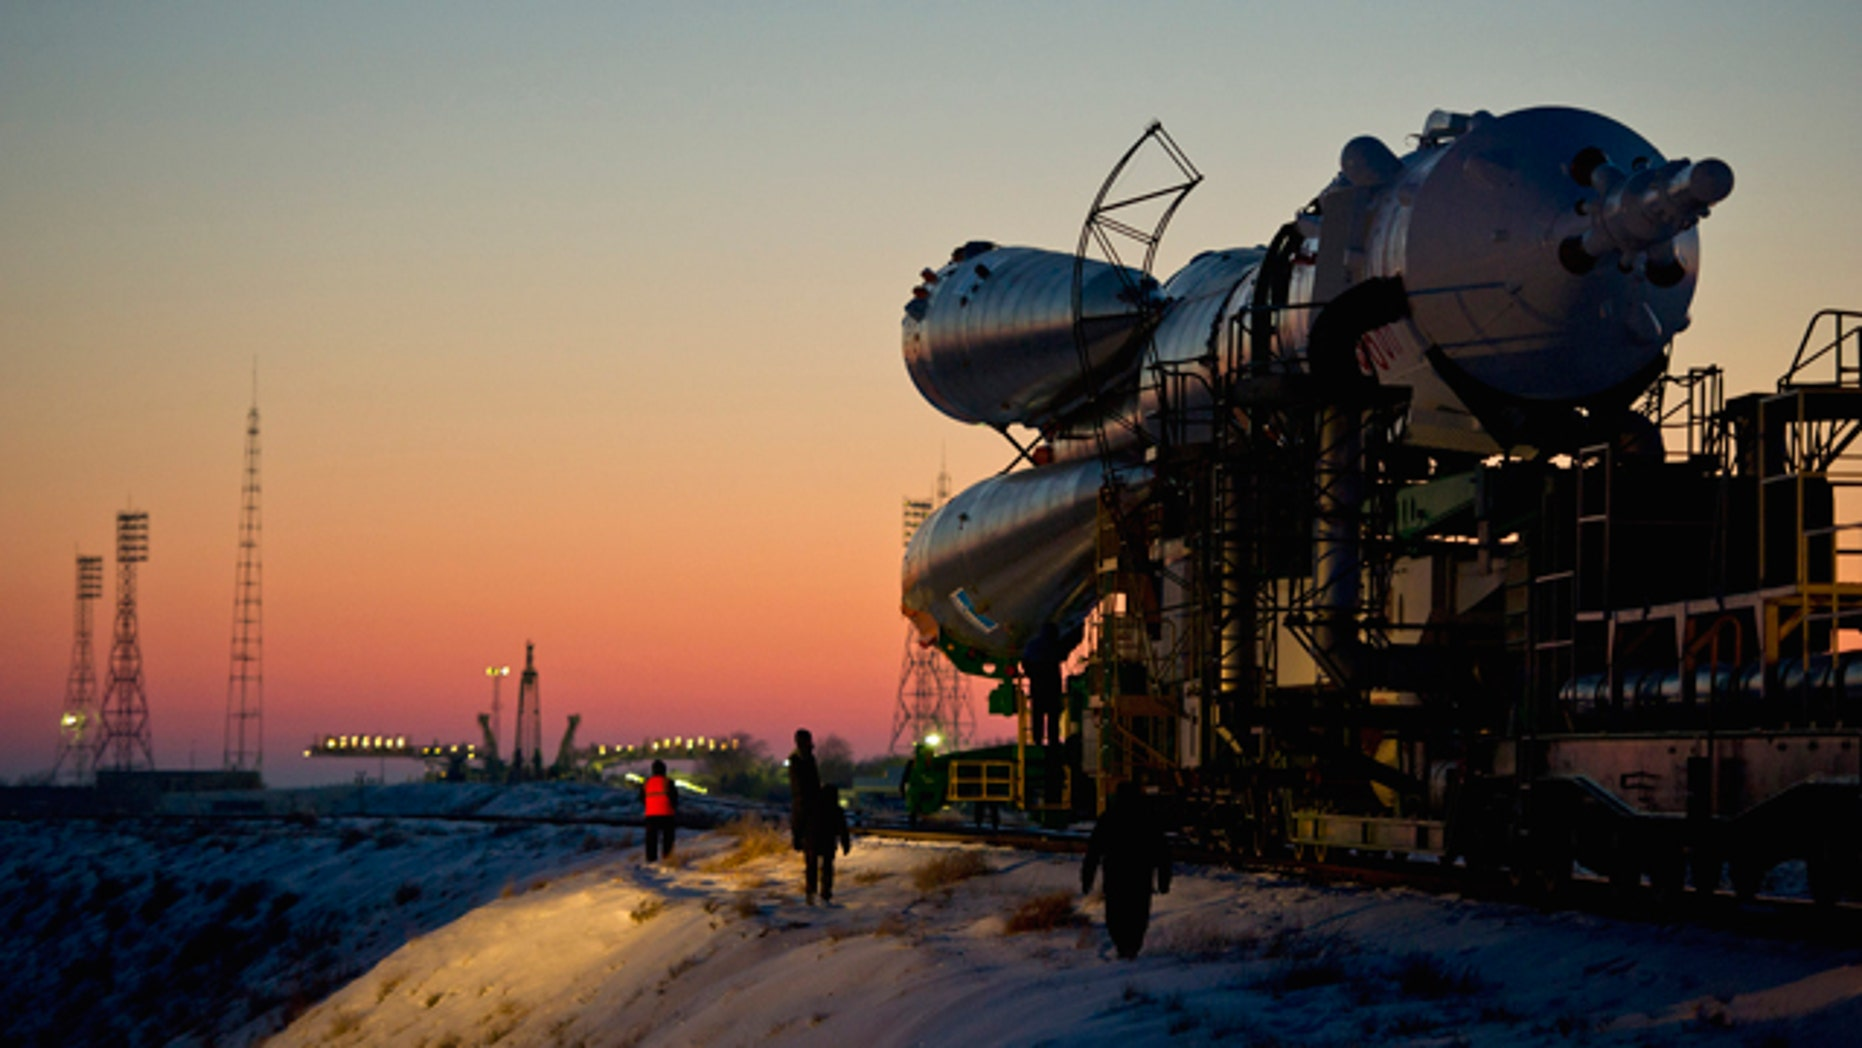 Dec. 21, 2011: A Soyuz rocket shown here blasted off on Wednesday, carrying a new crew to the International Space Station. Two days later, a Soyuz-2 -- an upgraded version of the workhorse Soyuz rocket -- carrying a communications satellite suffered a malfunction and crashed.